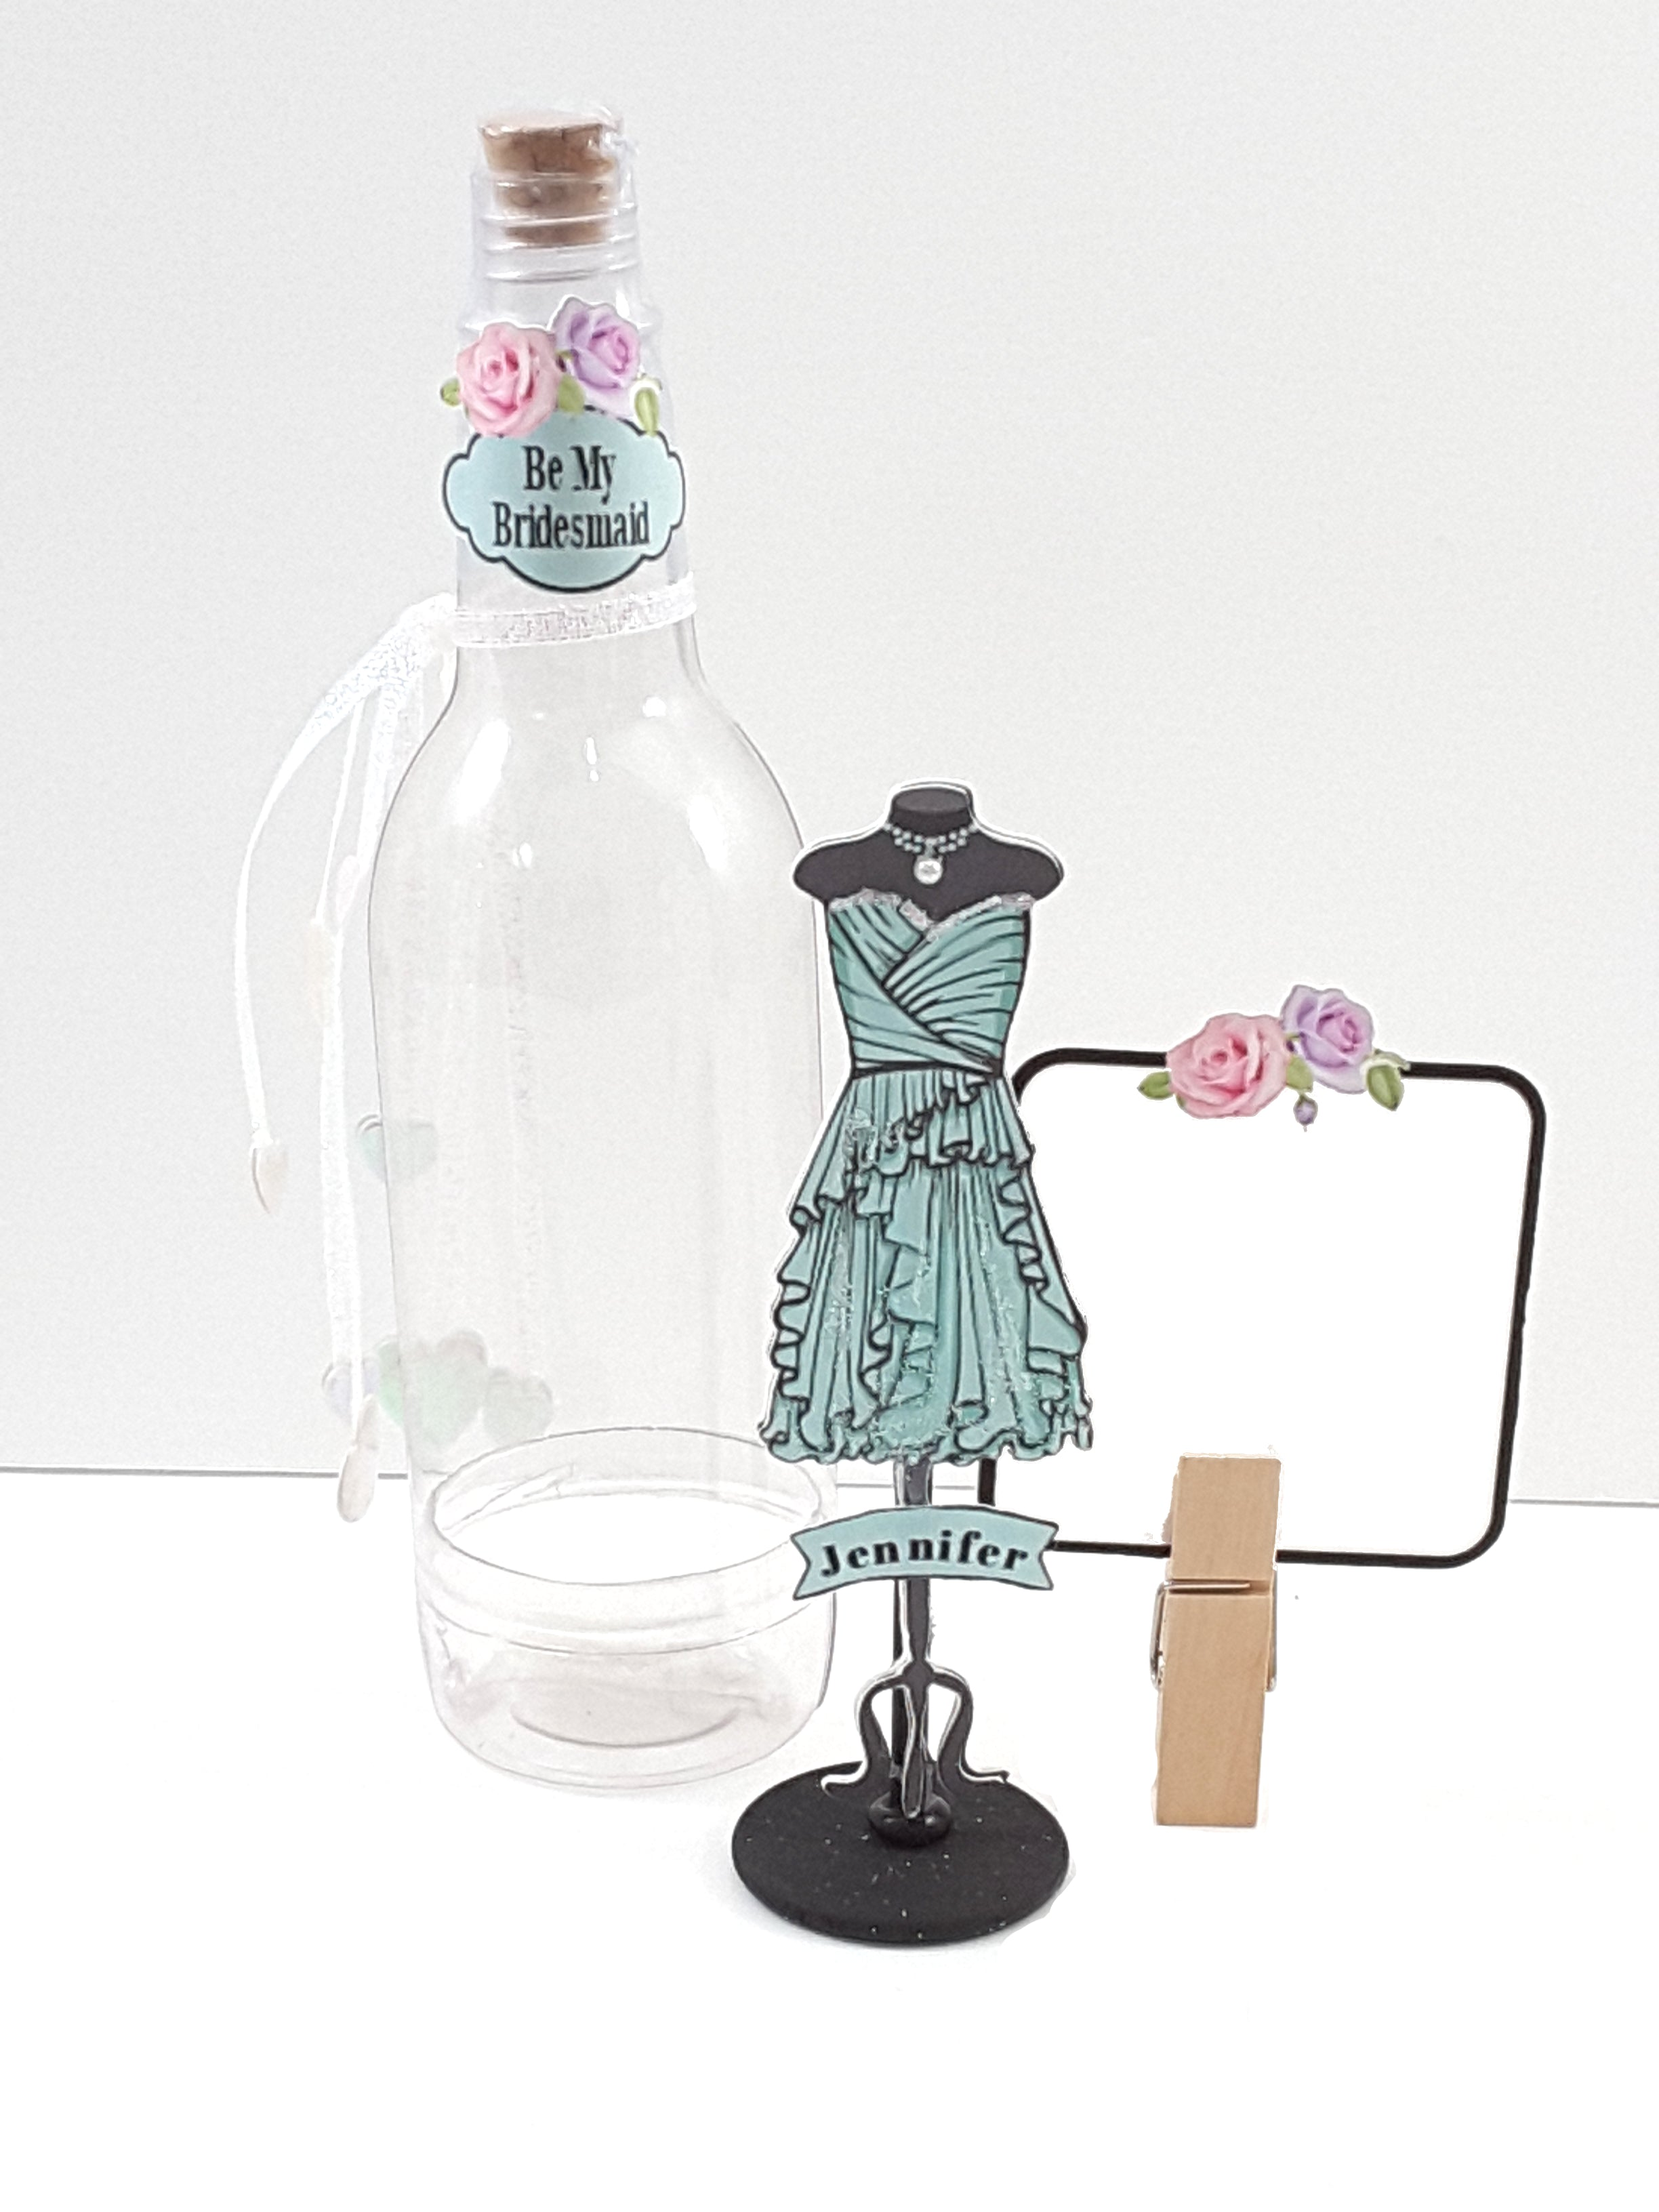 Personalized Handmade 3D Bridesmaid Message in a Bottle